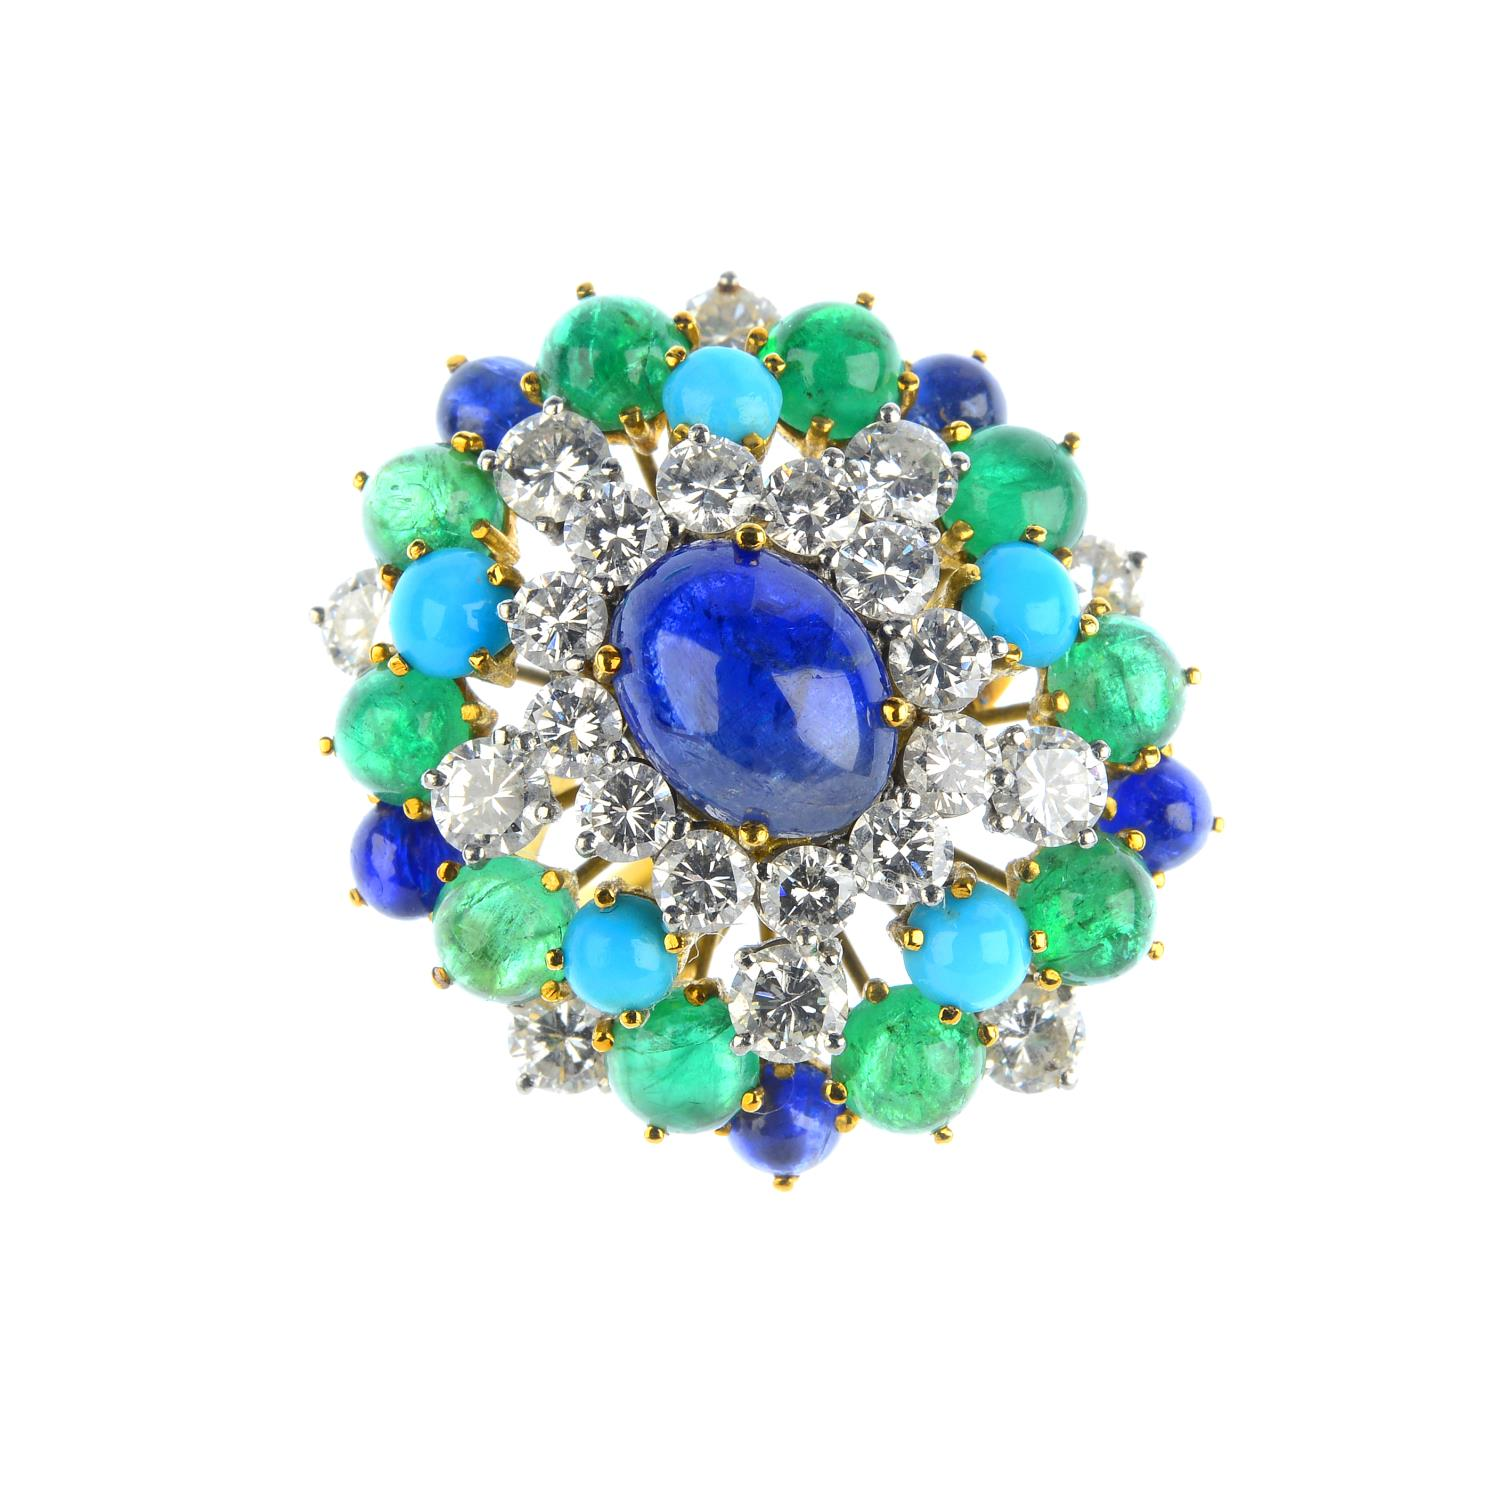 A 1960s diamond, emerald and enamel brooch. Designed as a textured bull, with pave-set diamond horns and brilliant-cut diamond, circular emerald cabochon and enamel foliate motif. Italian marks.